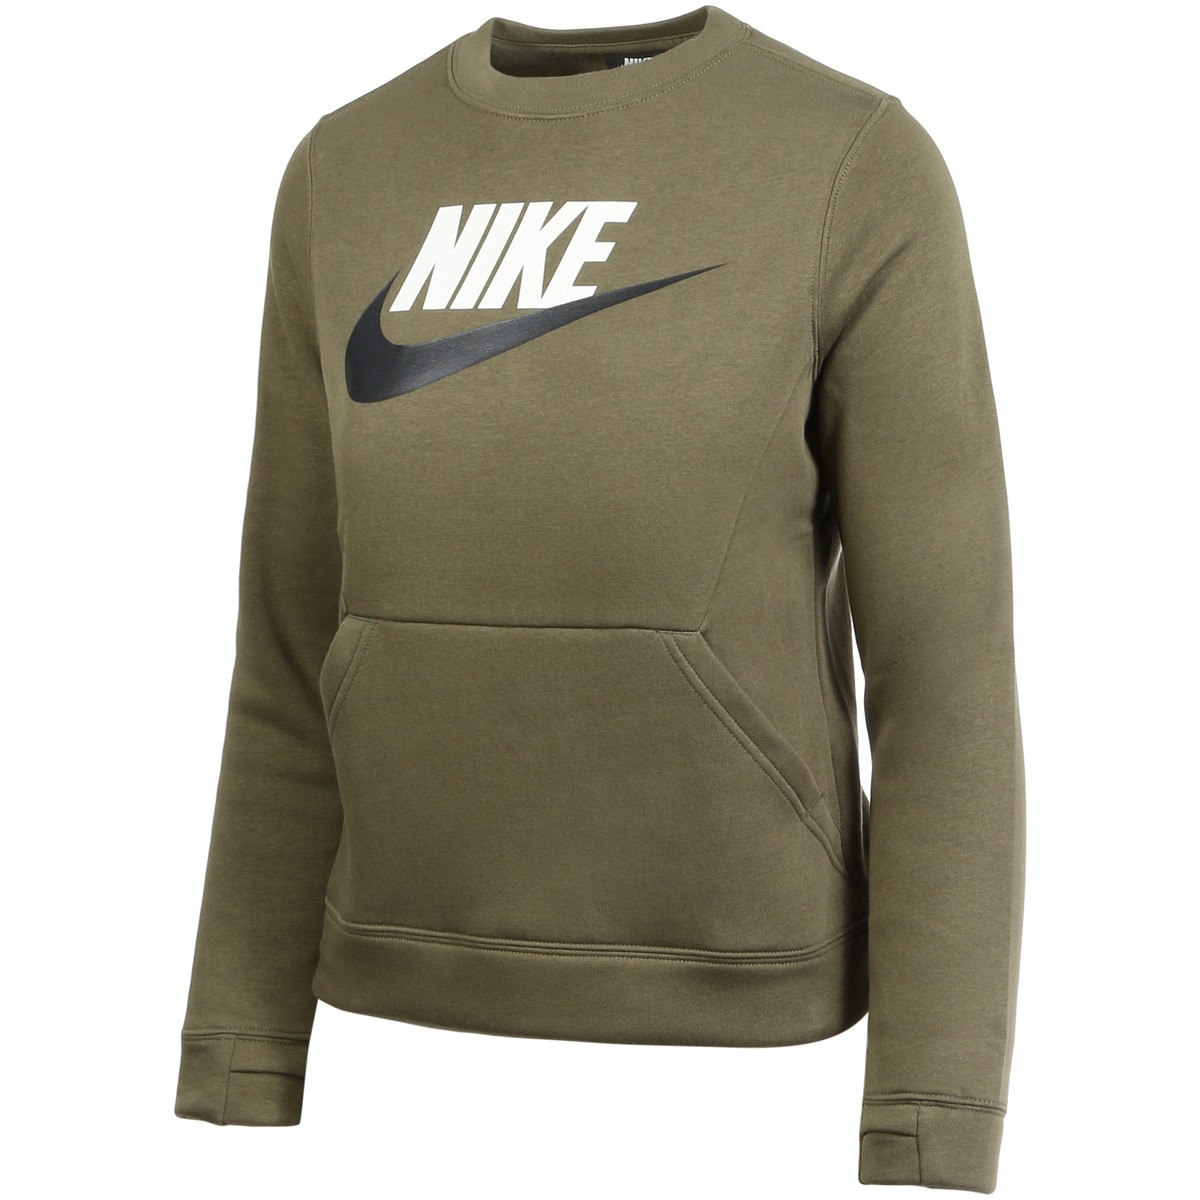 quality autumn shoes great look SWEAT NIKE JUNIOR RAS DU COU - NIKE - Junior - Vêtements ...